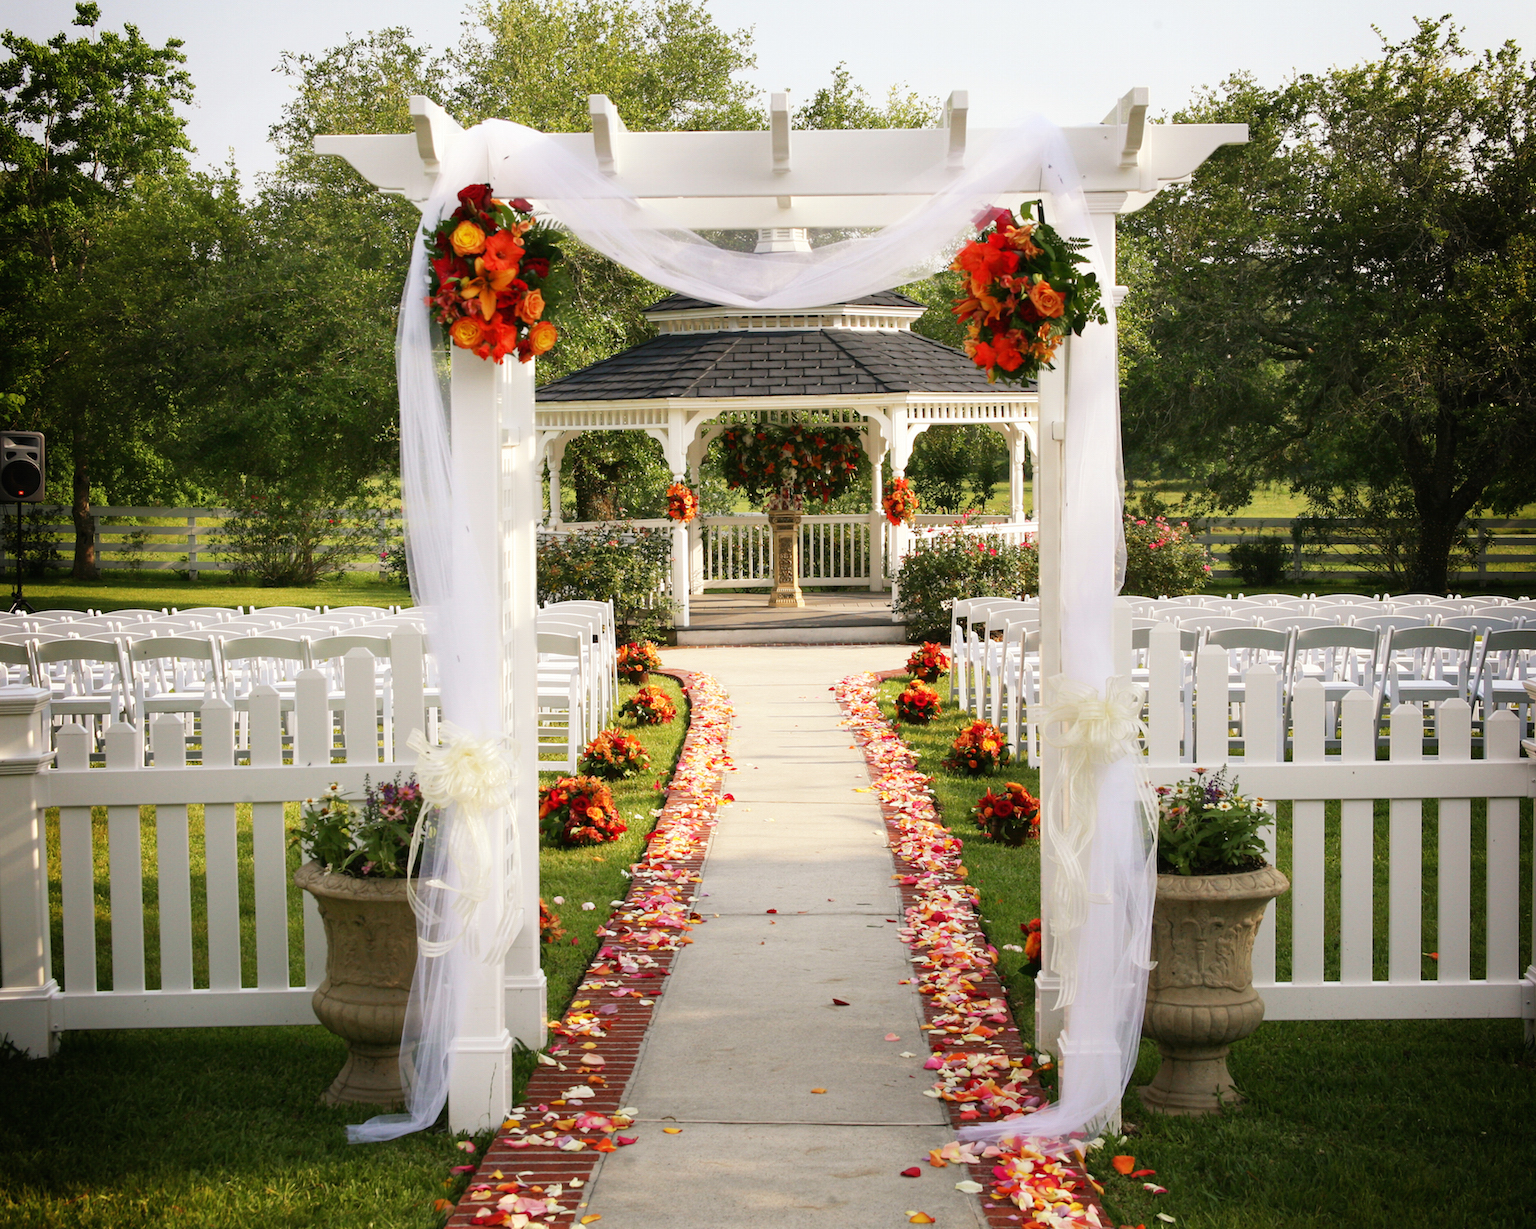 garden-gazebo-wedding-ceremony-aisle-decorating-ideas-with-best-design-and-outdoor-wedding-ceremony-decorations